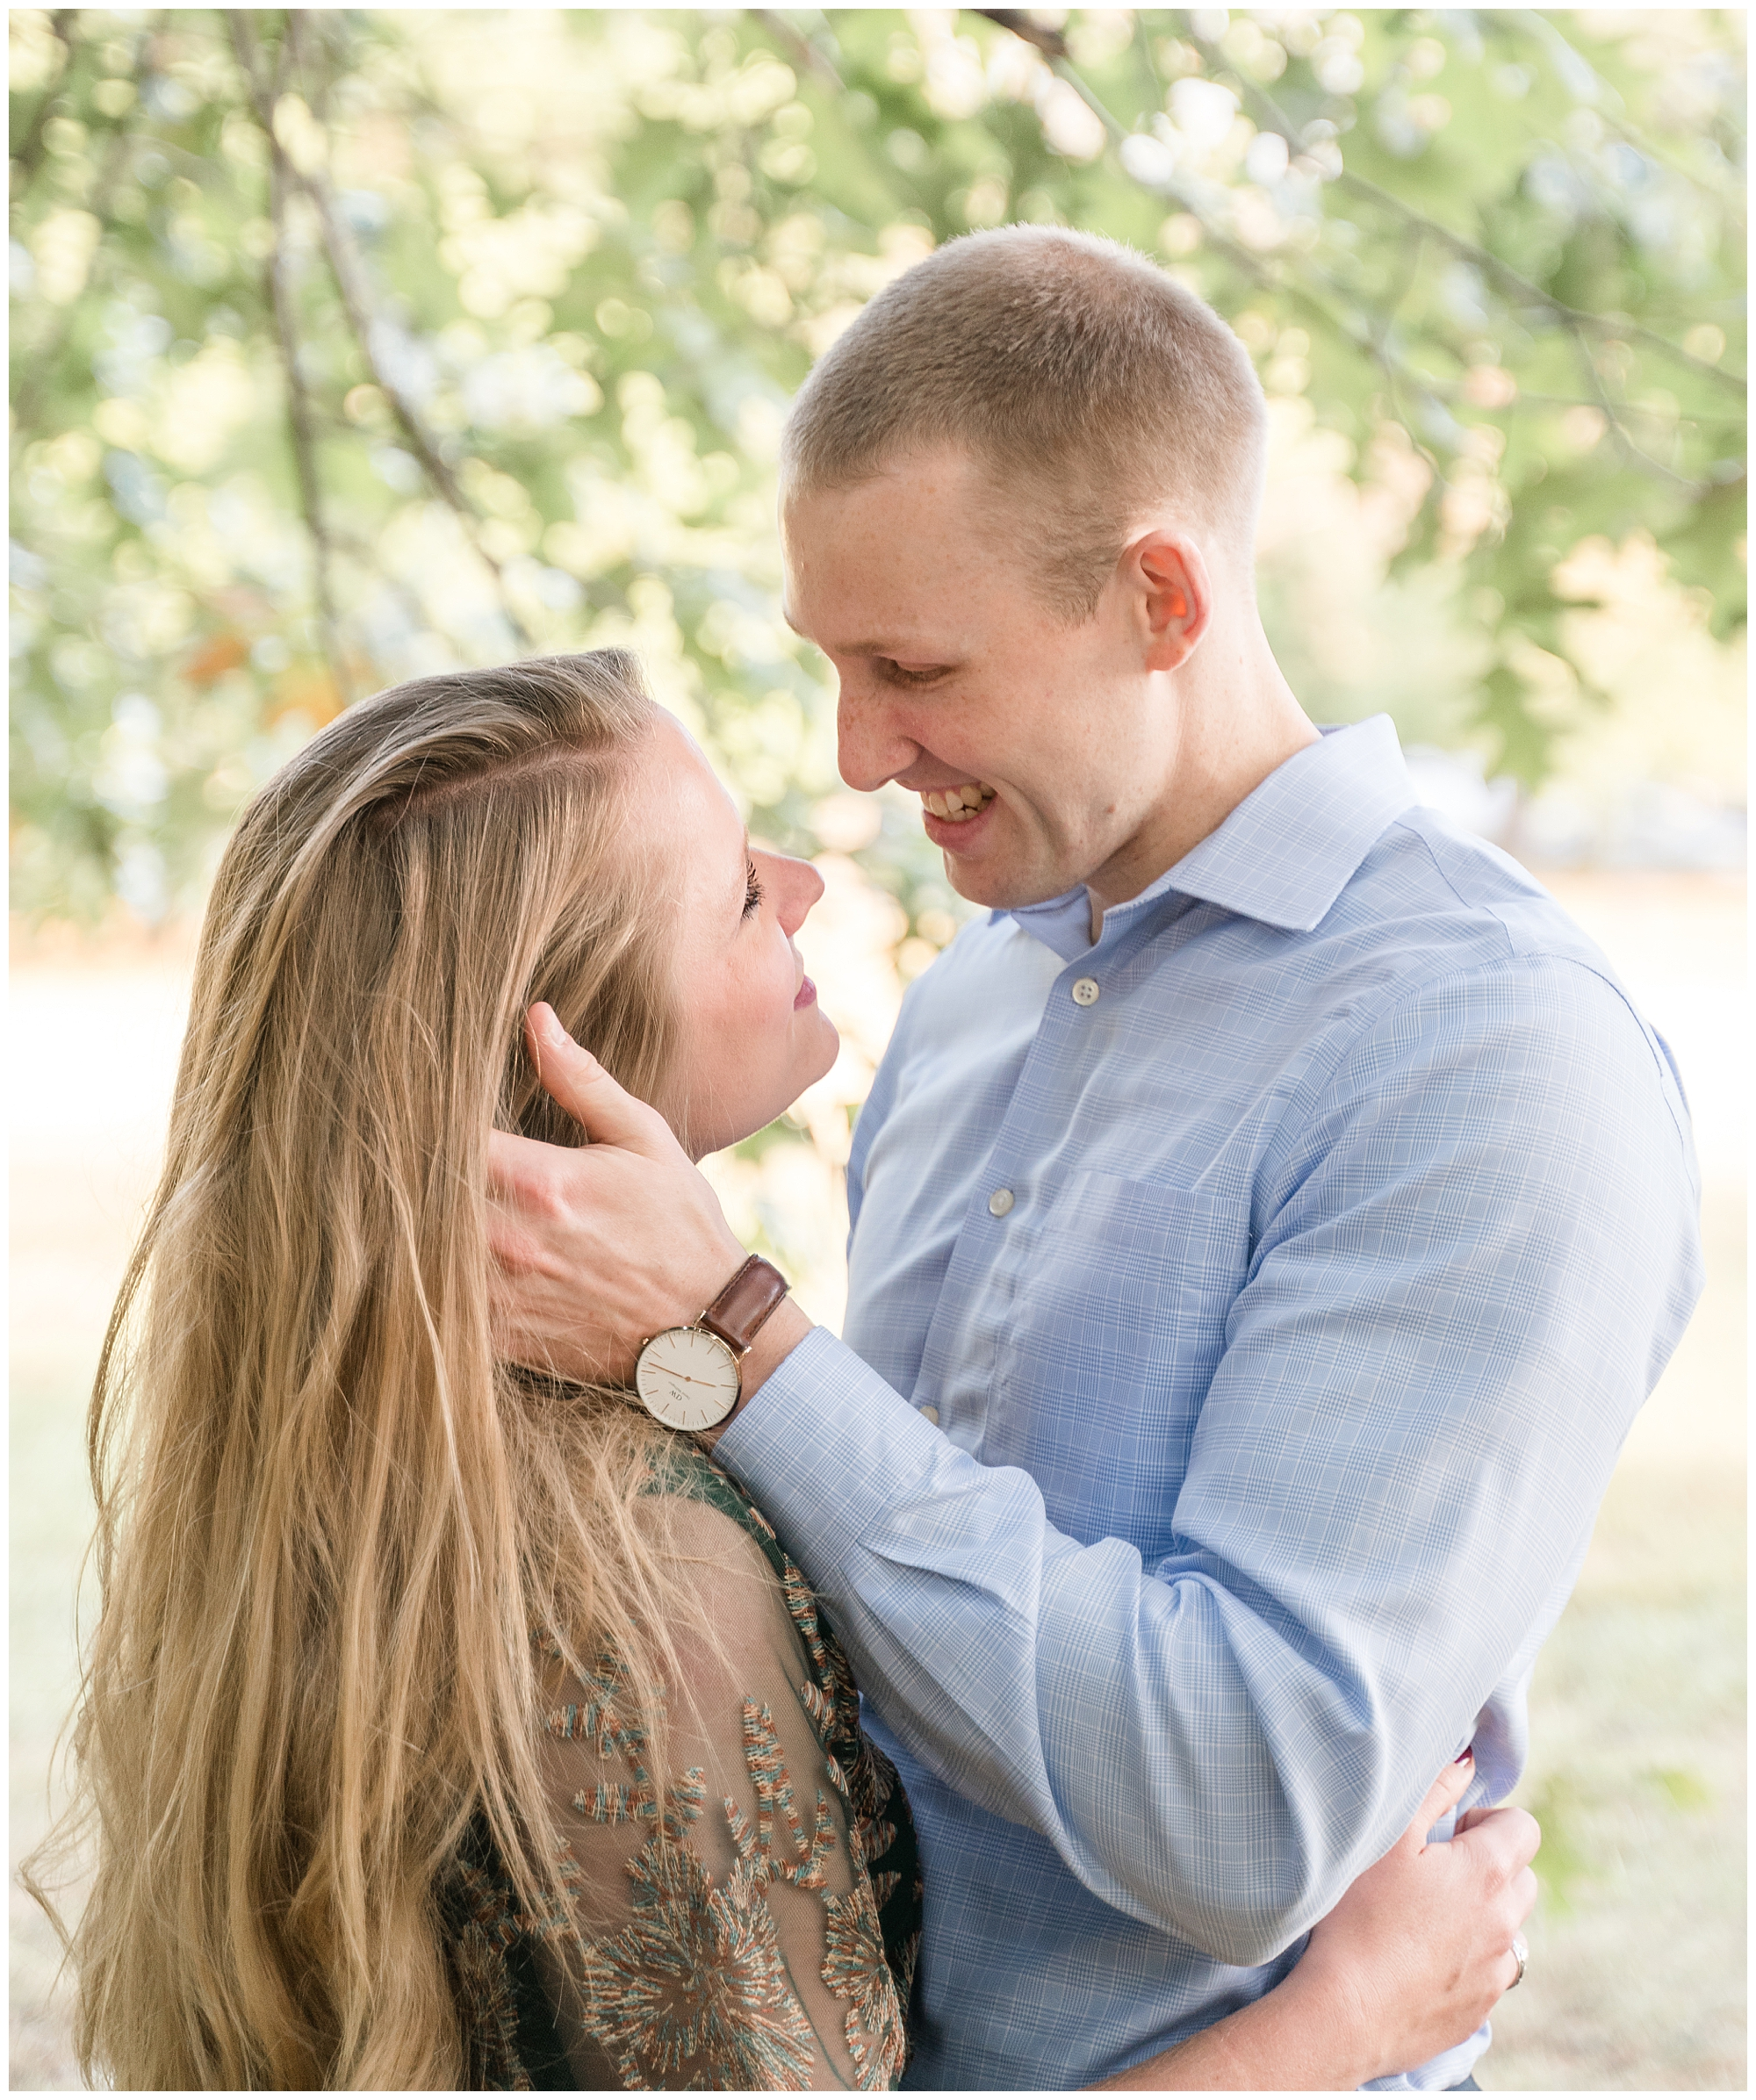 A man touches his fiancée's hair as they look at each other during their DC engagement session.